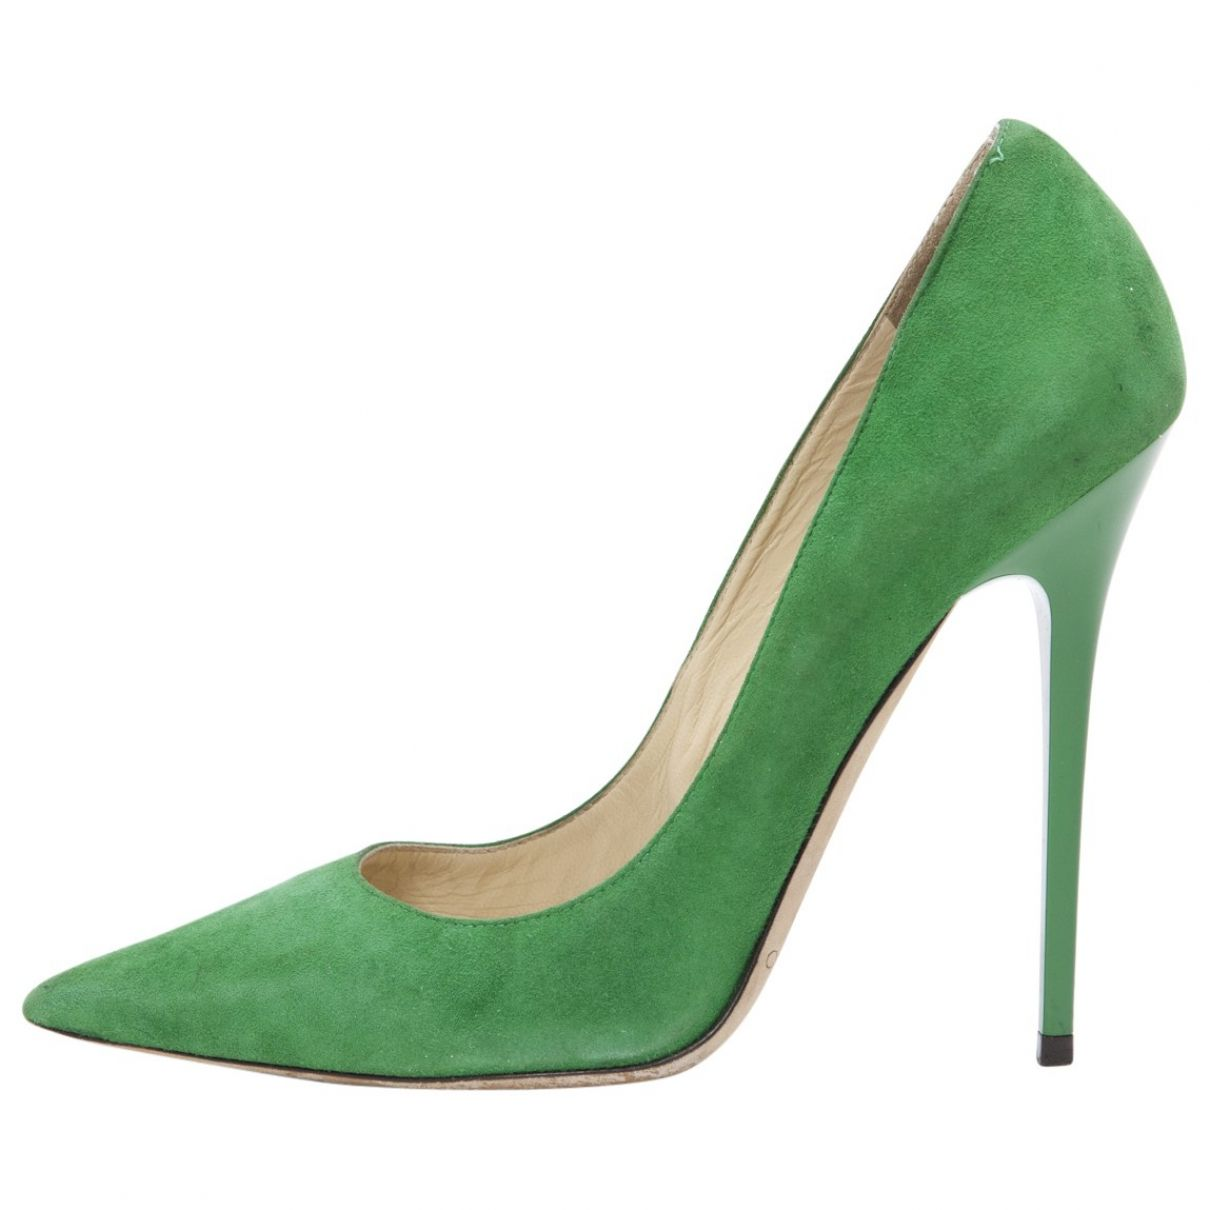 JIMMY CHOO Green Suede Heels | Vestiaire Collective